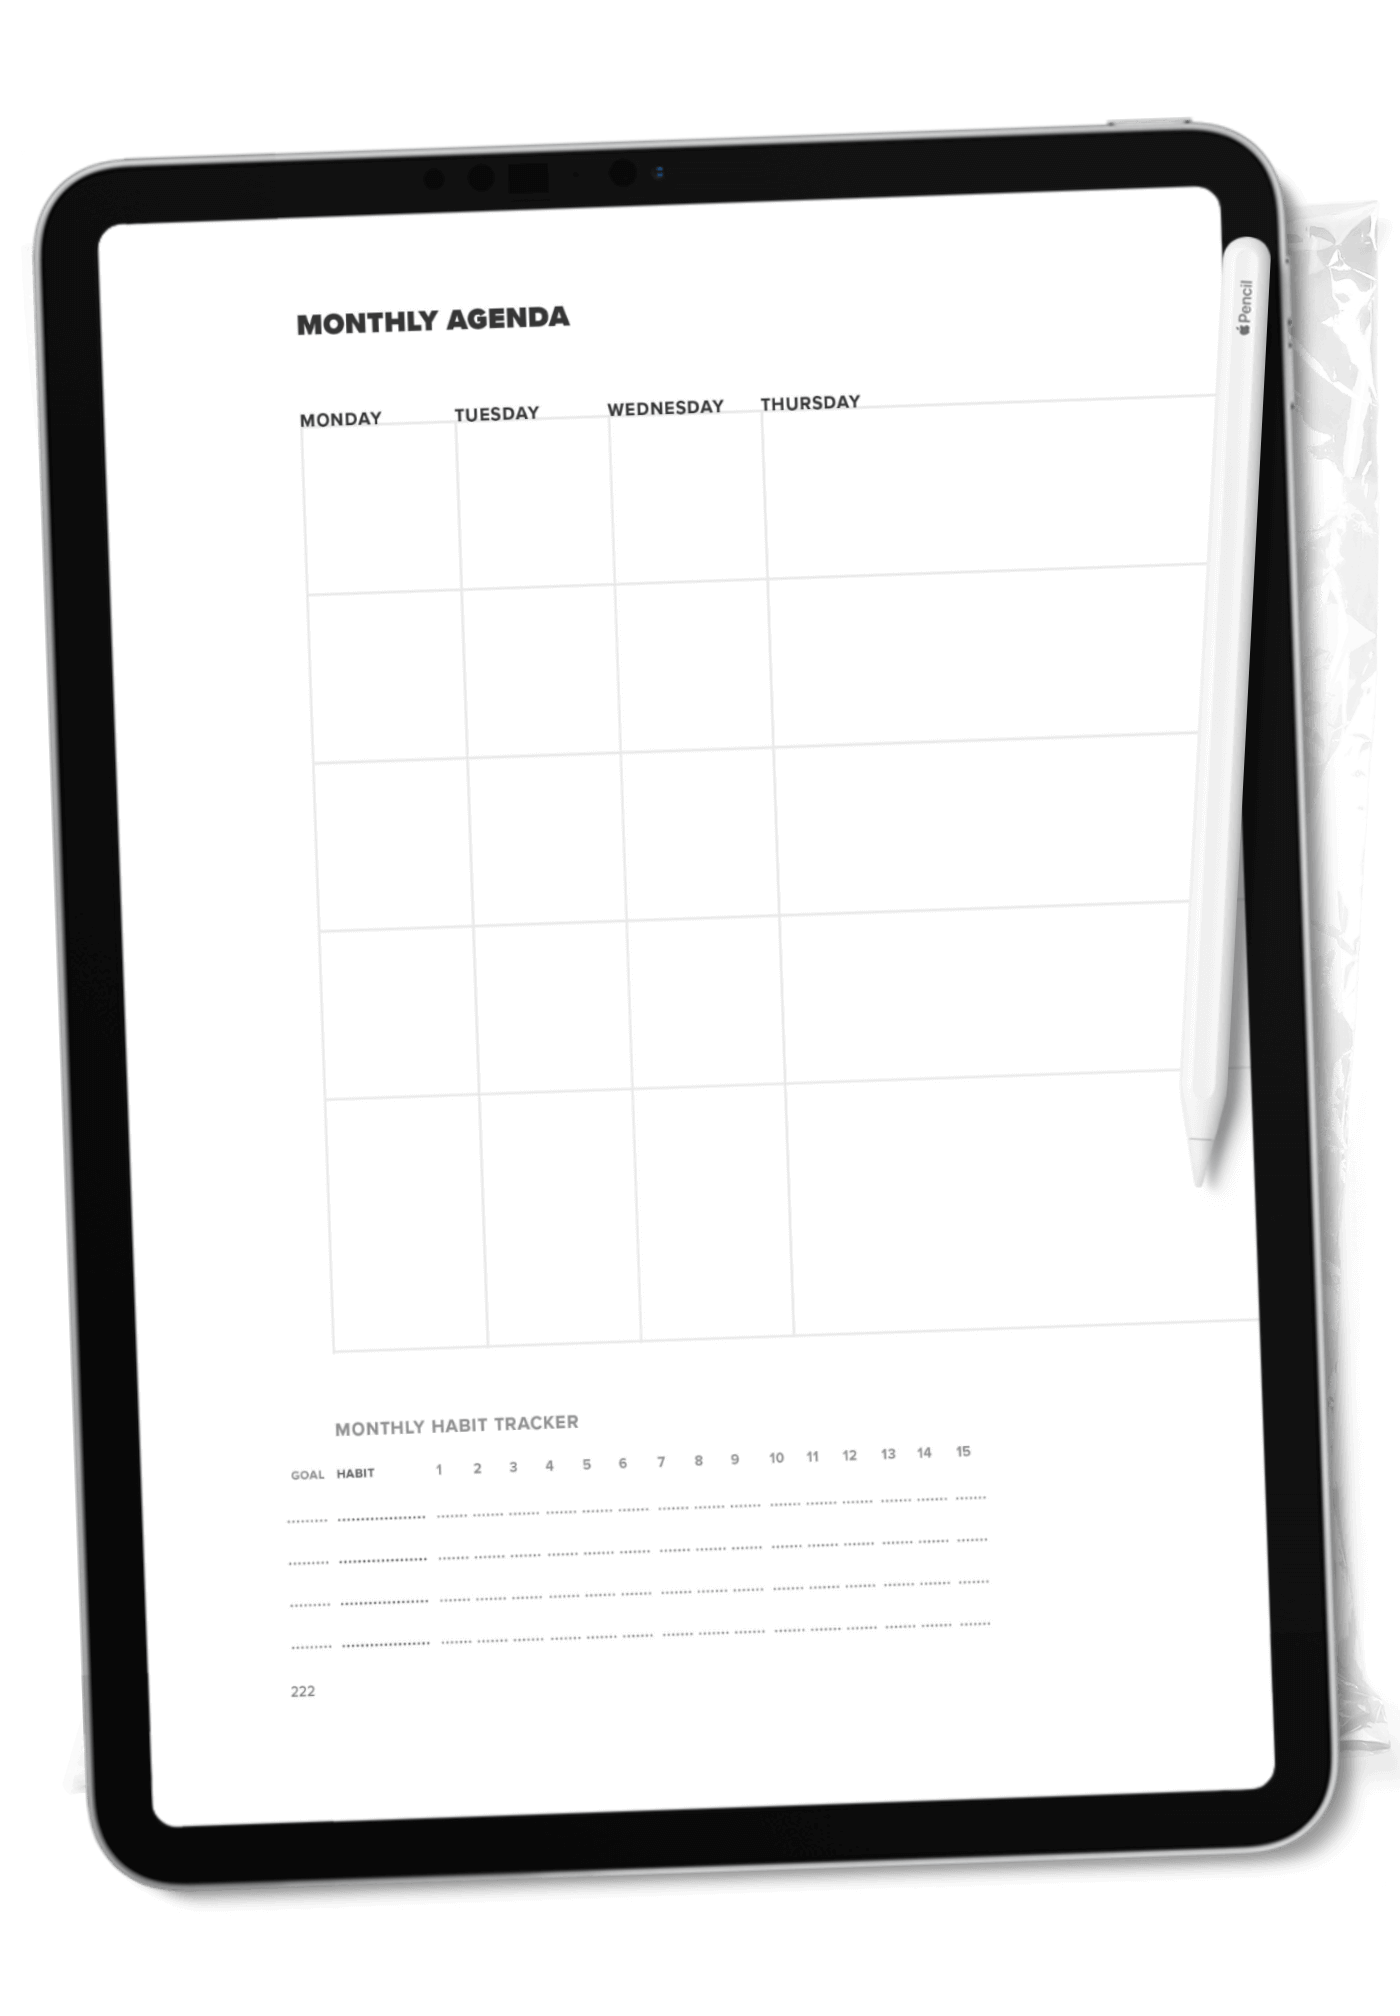 Monthly agenda page, displayed on an iPad